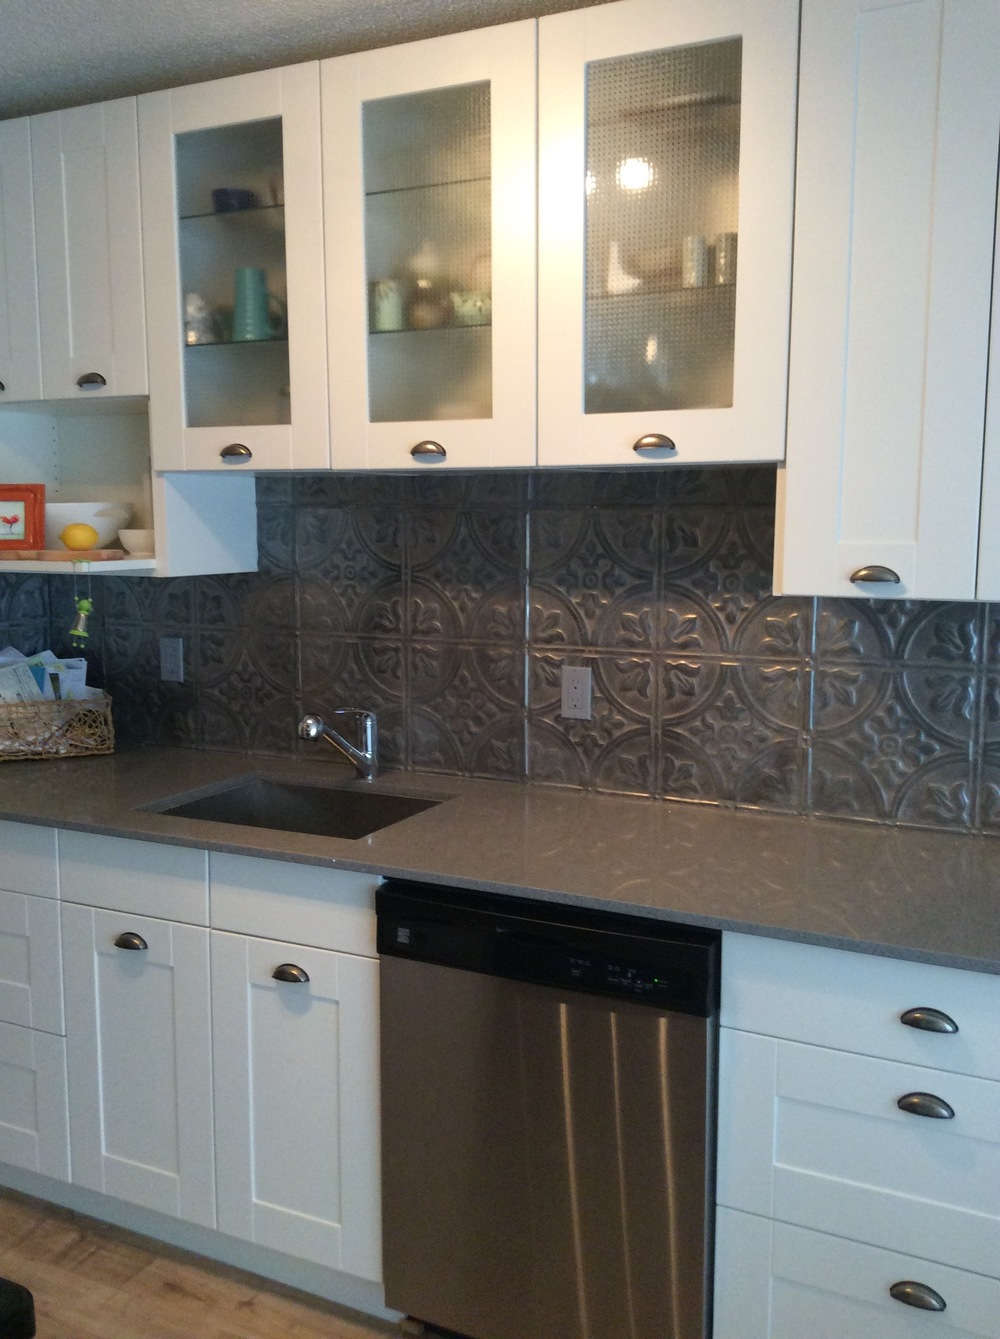 Ikea kitchen, quartz countertops, tin tile backsplash.